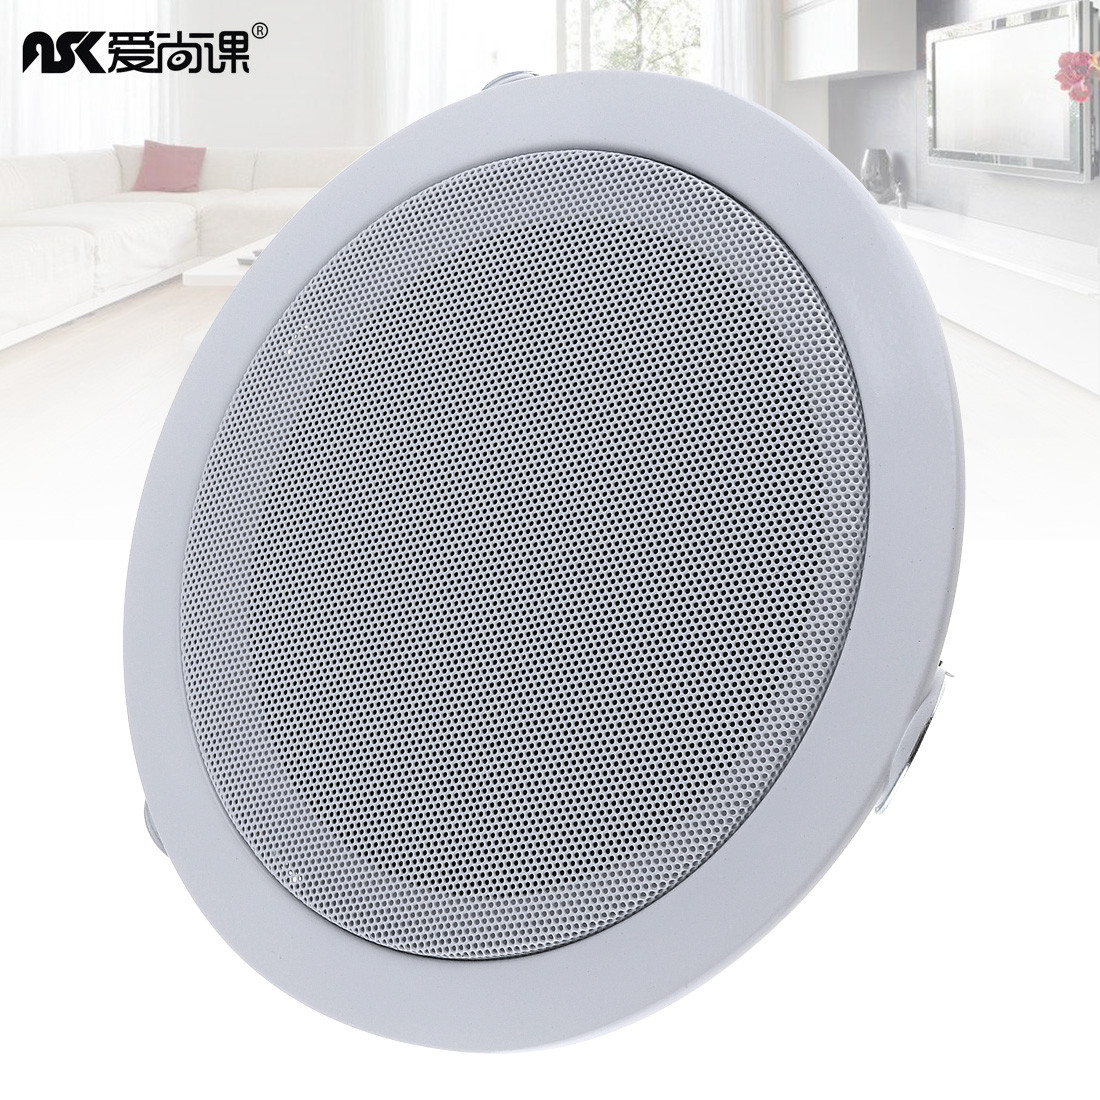 Expressive 6 Inch 15w Fashion Metal Input Usb Mp3 Player Ceiling Speaker Public Broadcast Home Background Wall Music System Loudspeakers To Have A Unique National Style